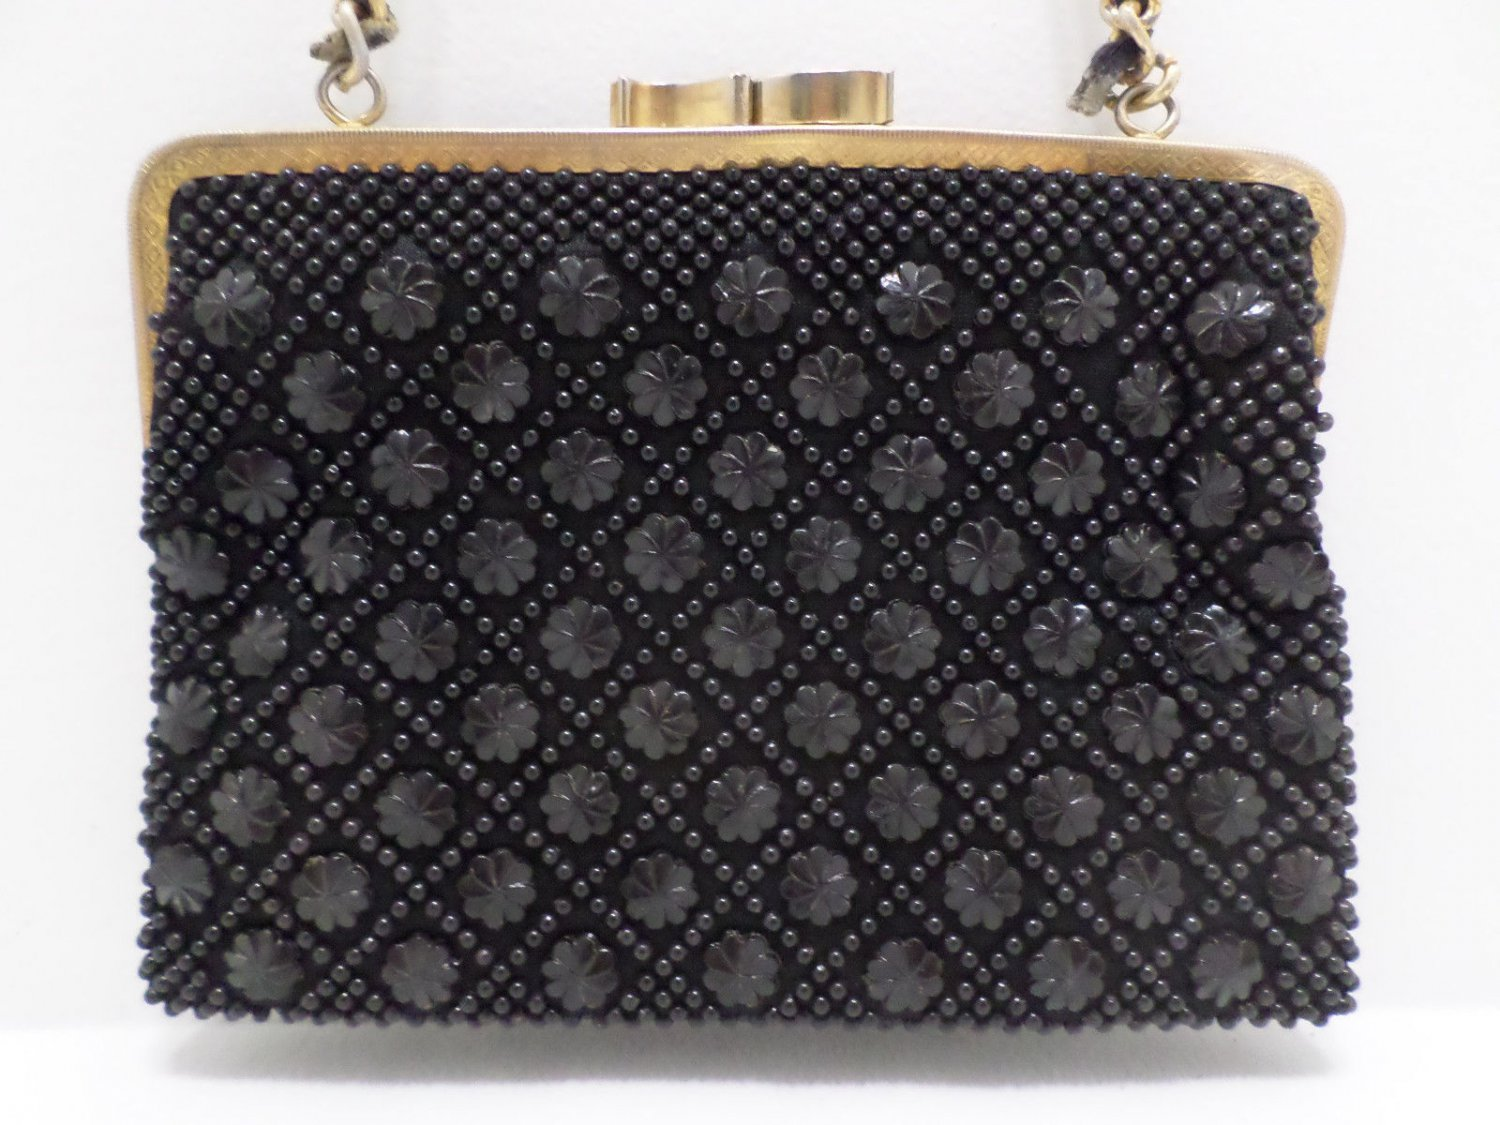 Vintage Evening Purse Black with Gold Tone Metal Chain Handle by Du Val